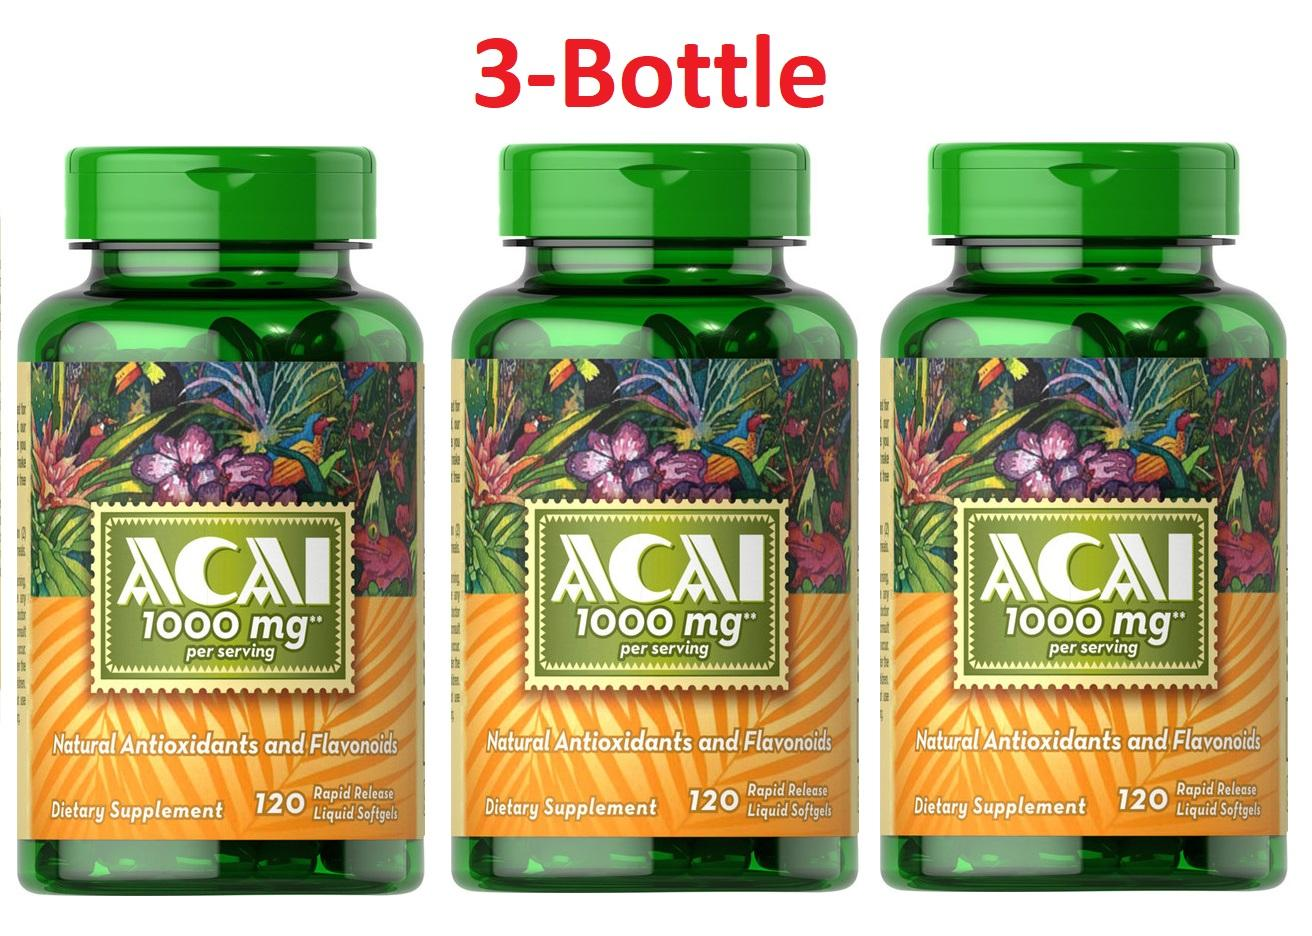 Acai Berry 1000mg Organic with Flavonoids, Anti-aging and Immunity 120 Sg, Puritan's